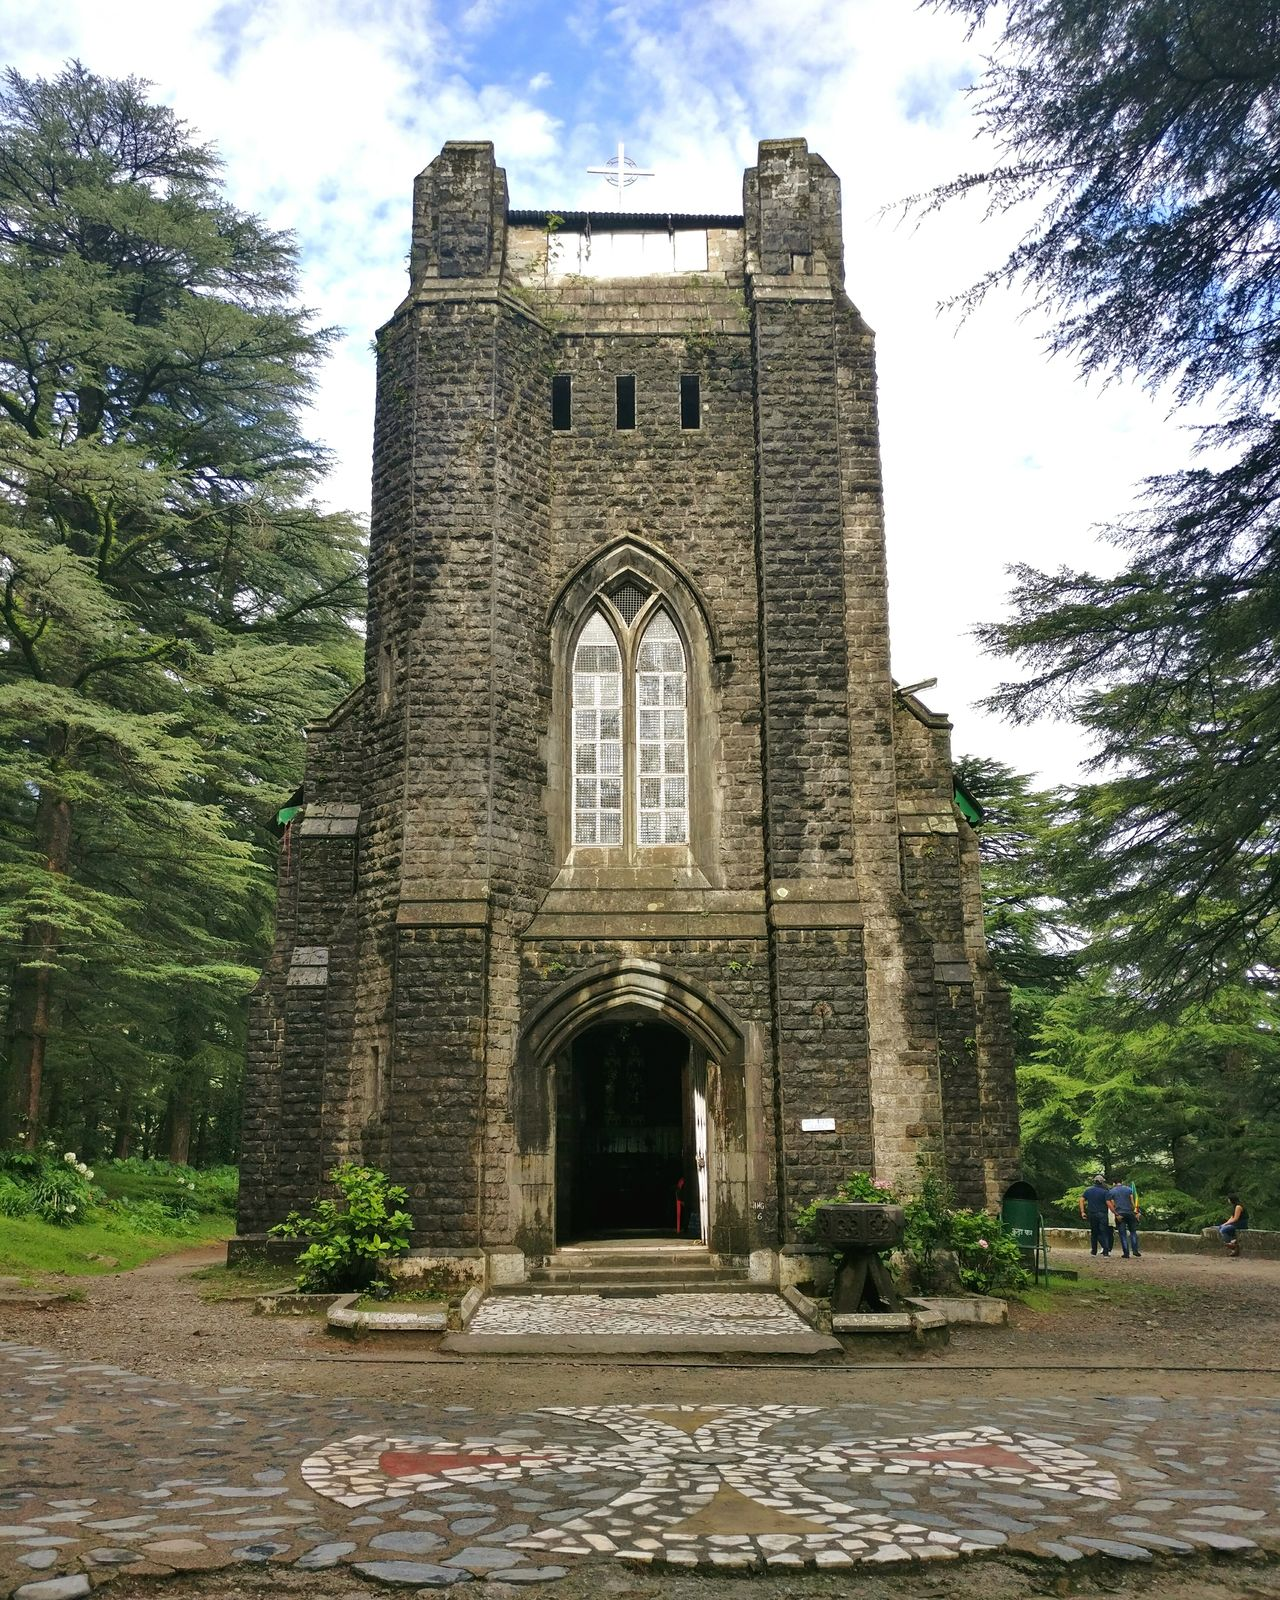 St John in the Wilderness is an Anglican church dedicated to John the Baptist built in 1852 and is located in Mcleod Ganj, India. The church is known for its Belgian stained-glass window. FirstUpload Church Onepluslife Oneplus3 PhotographyLove Symmetry Dharamshala Mcleodganj Worldthroughlens Belgian  Peace Beauty Stonestructure Deodar Forest Amen First Eyeem Photo